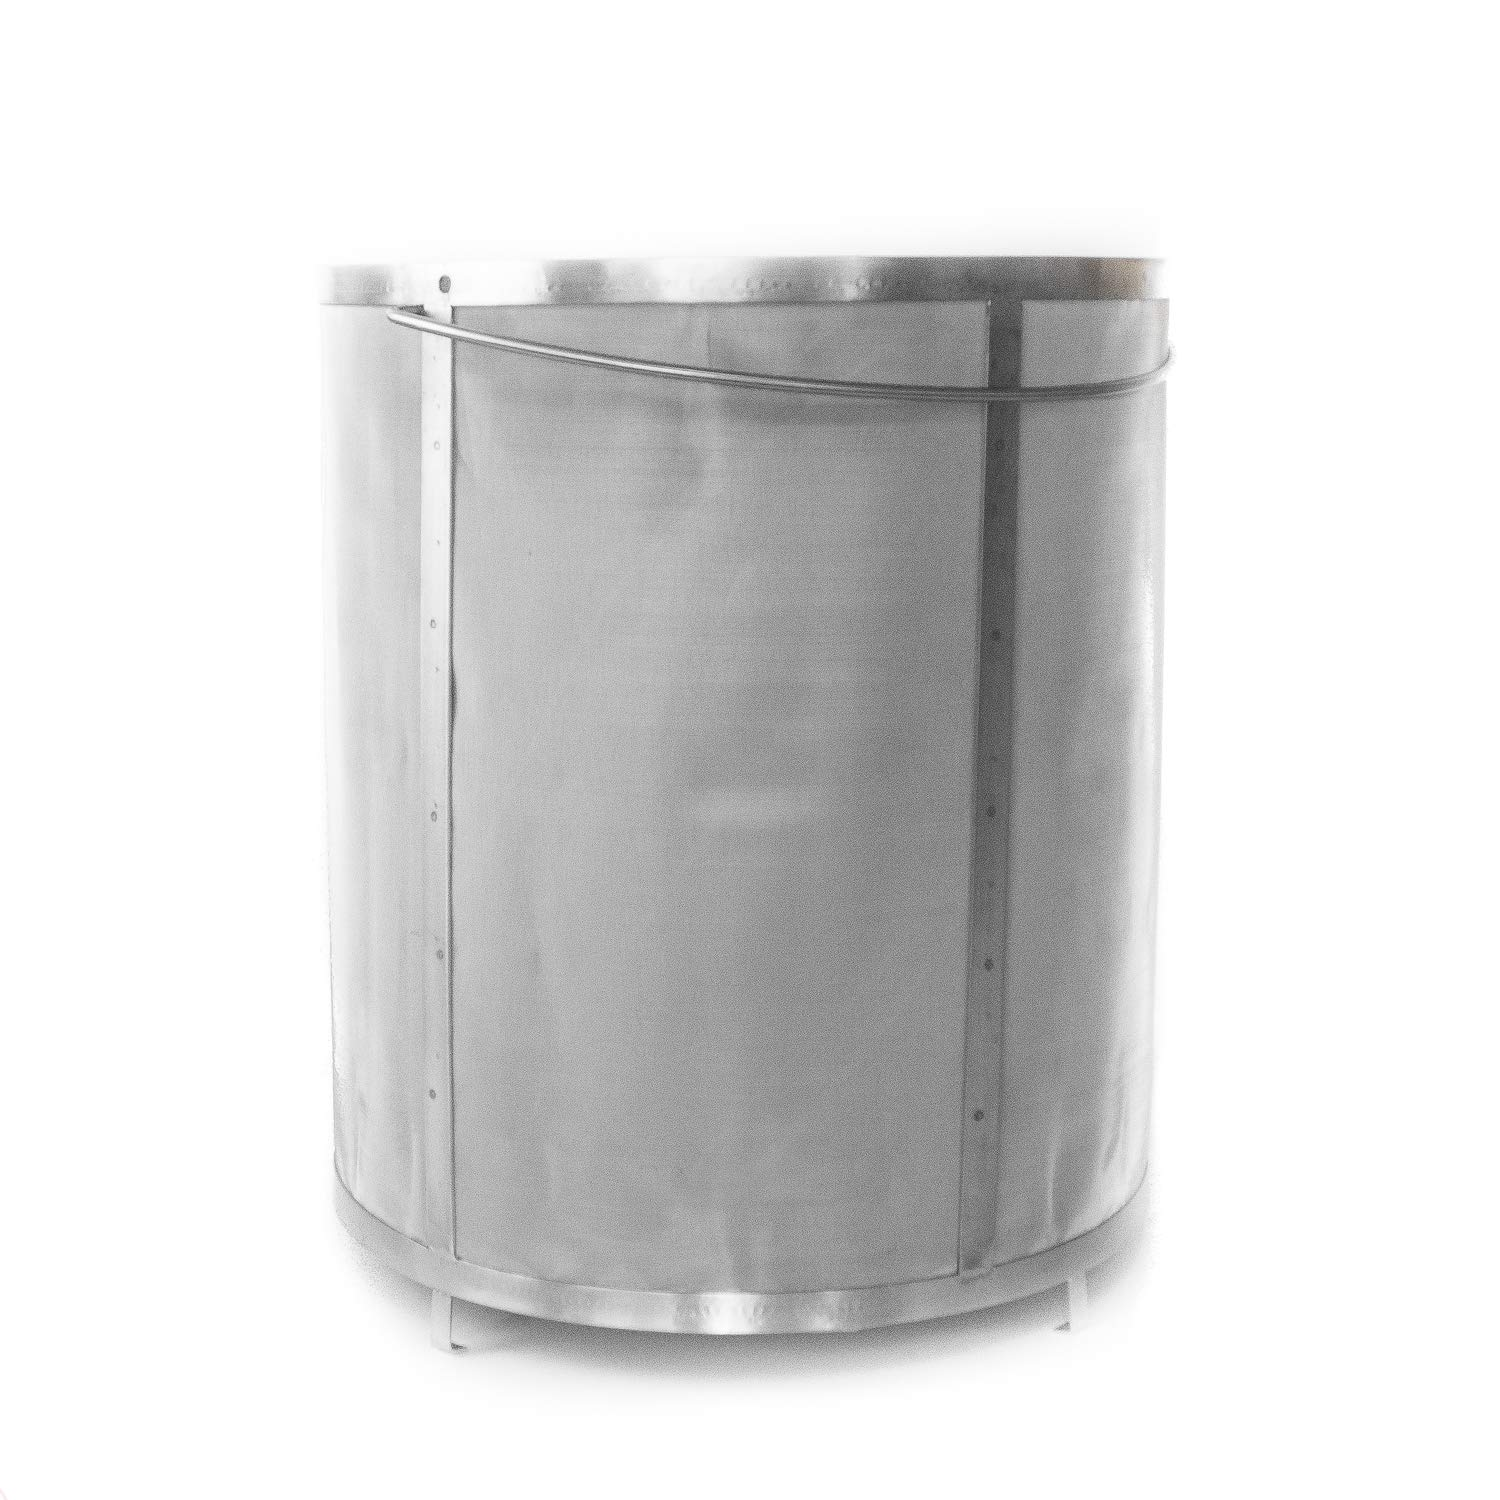 Forgeworks Cold Brewer - Commercial 20 Gallon Capacity Stainless Steel Cold Brew Vessel by Forgeworks Stainless (Image #4)